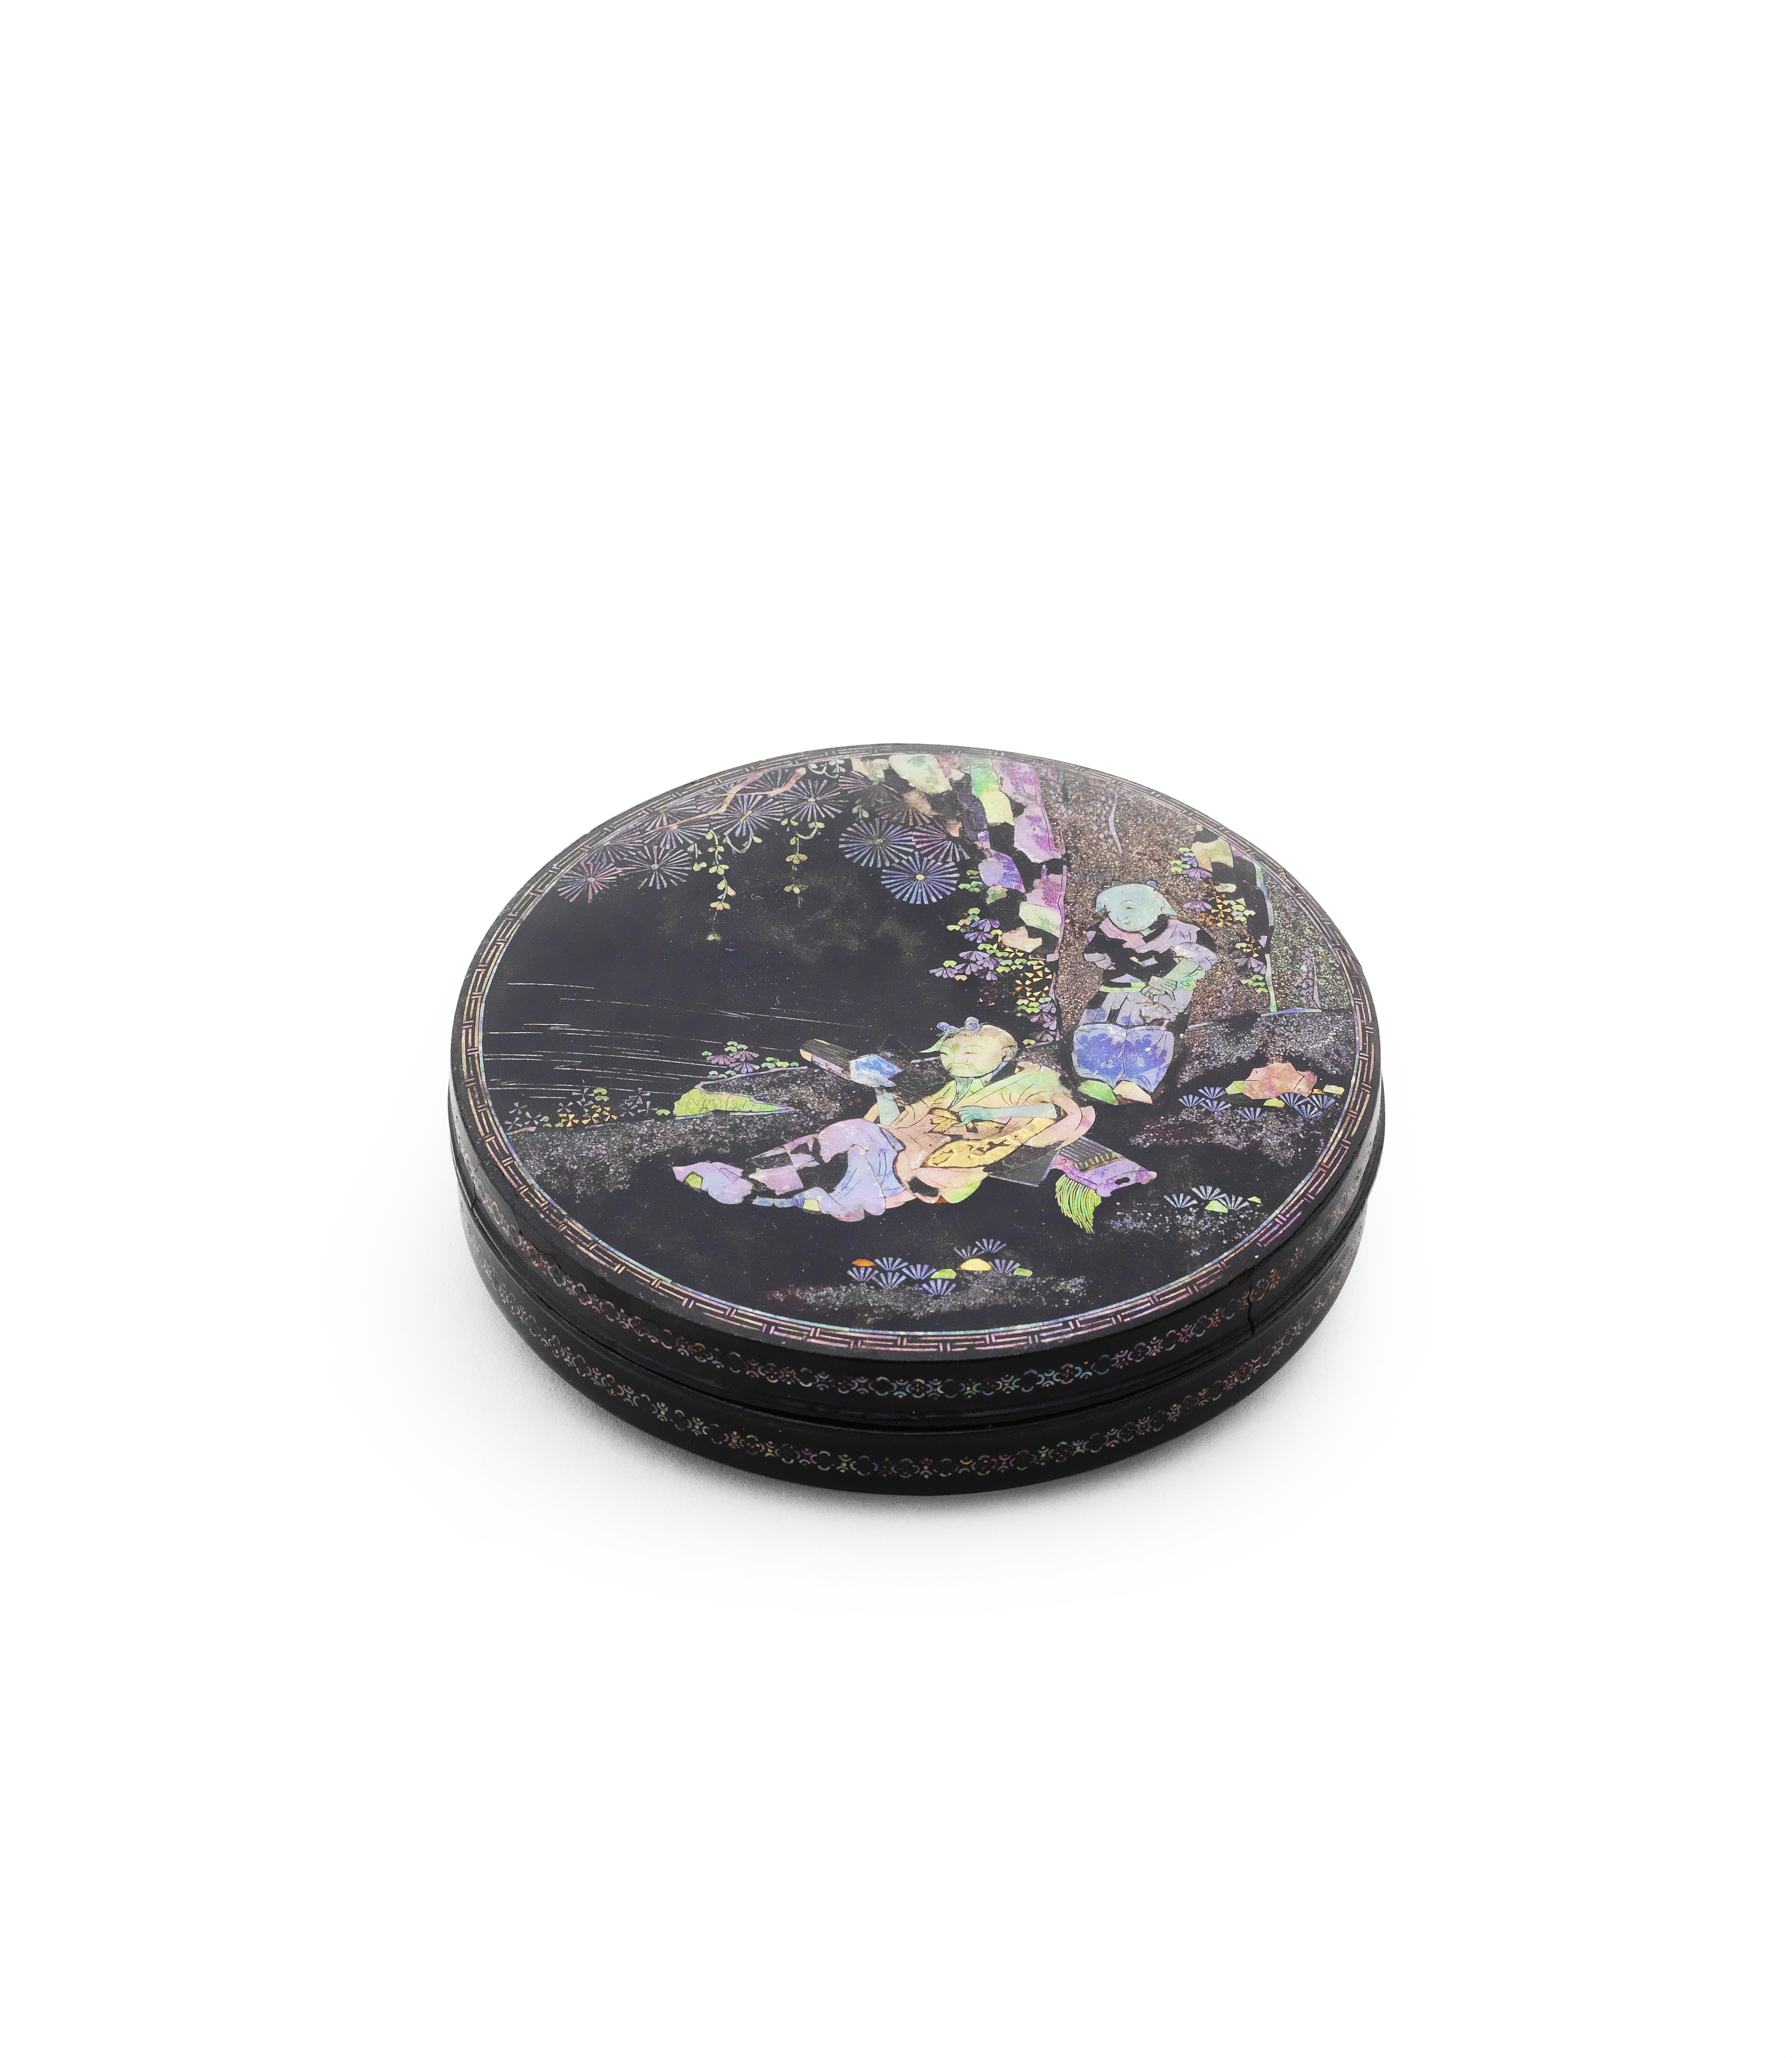 A MOTHER-OF-PEARL INLAID BLACK LACQUER CIRCULAR BOX AND COVER Junyu Shi seal mark, 17th century (2)